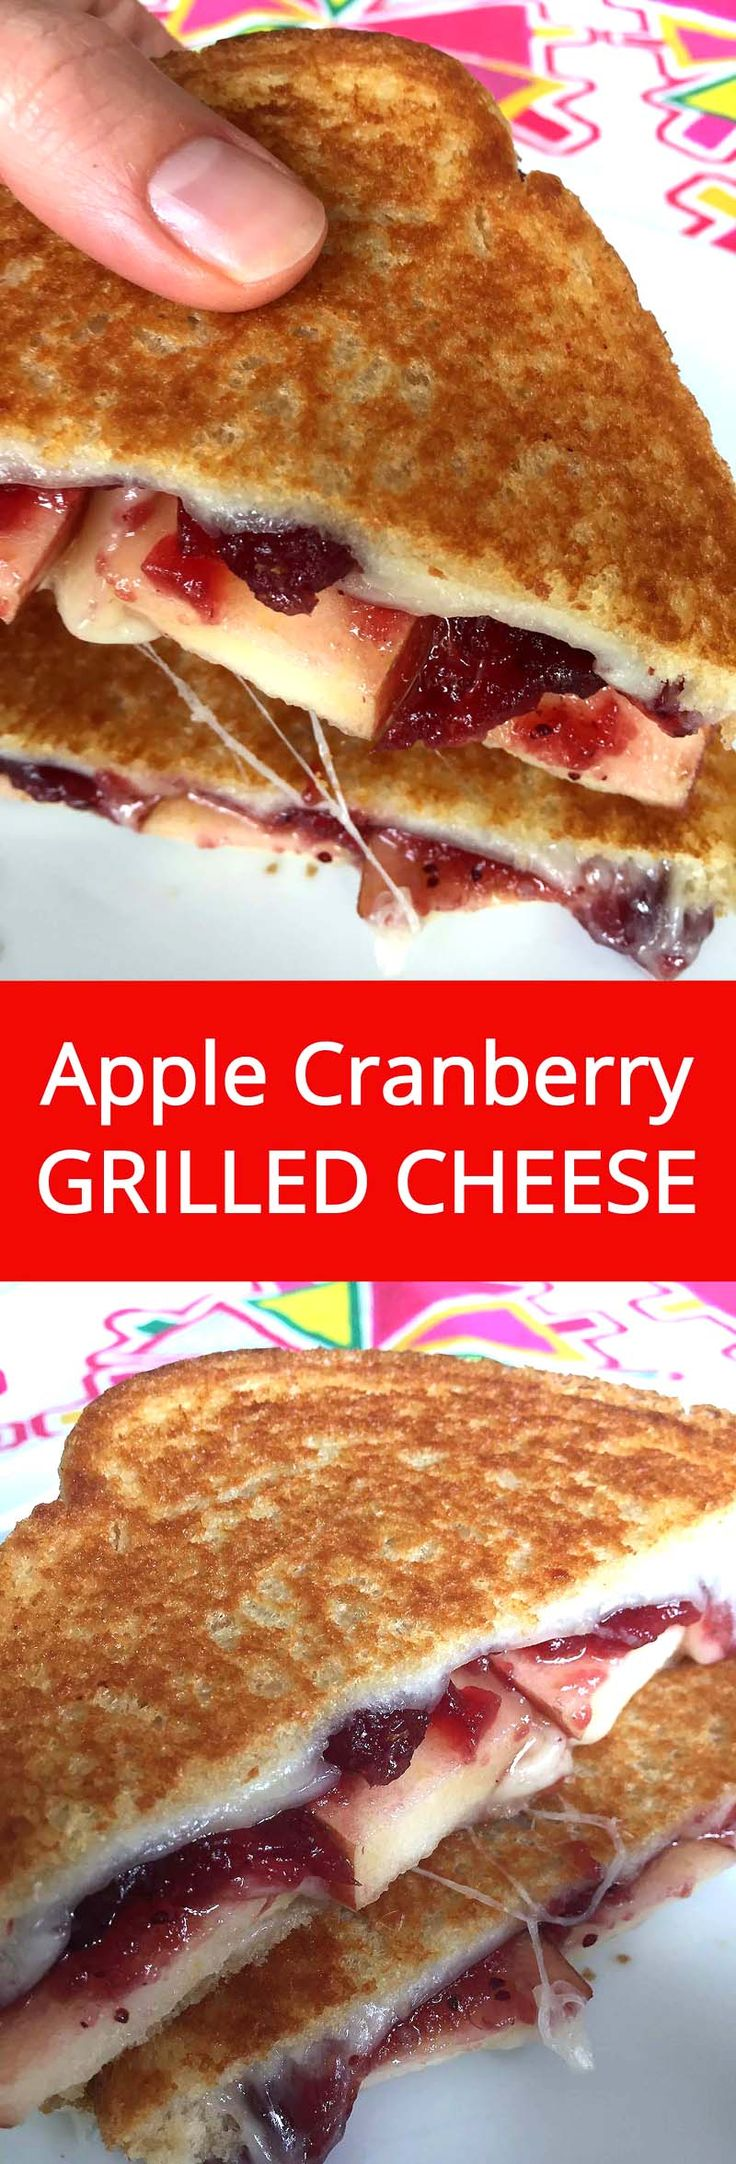 #ad Apple Cranberry Grilled Cheese - mouthwatering!  I love this grilled cheese! #RealCheesePeople @SargentoCheese | MelanieCooks.com